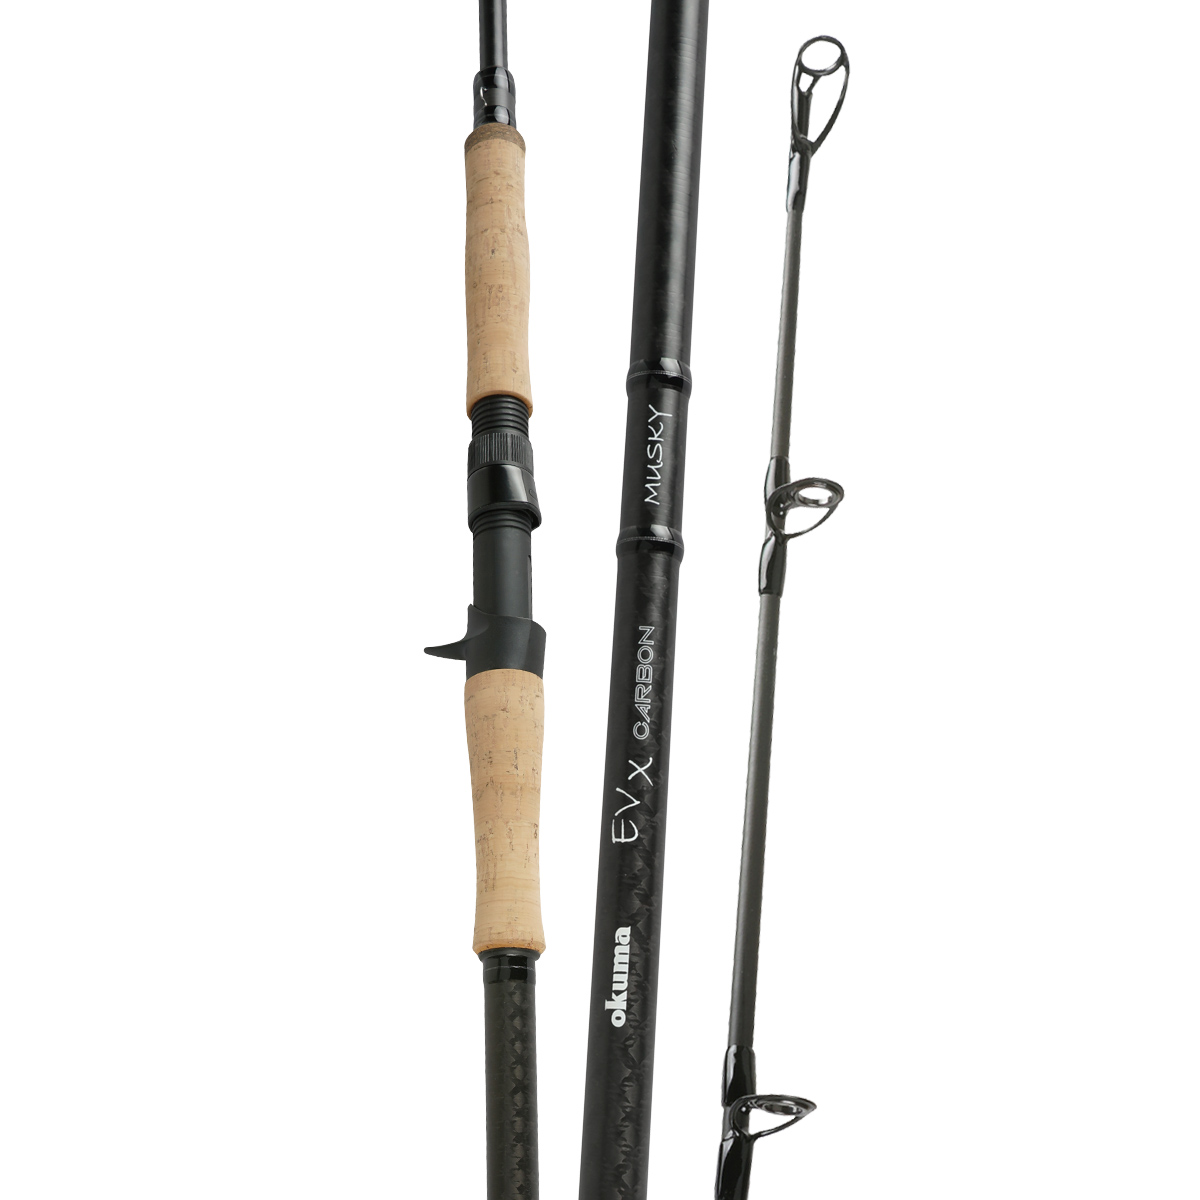 EVX Carbon Rod - Okuma EVX Carbon Rod-Professional level bass fishing rods -30-Ton ultra-sensitive and responsive carbon blank construction